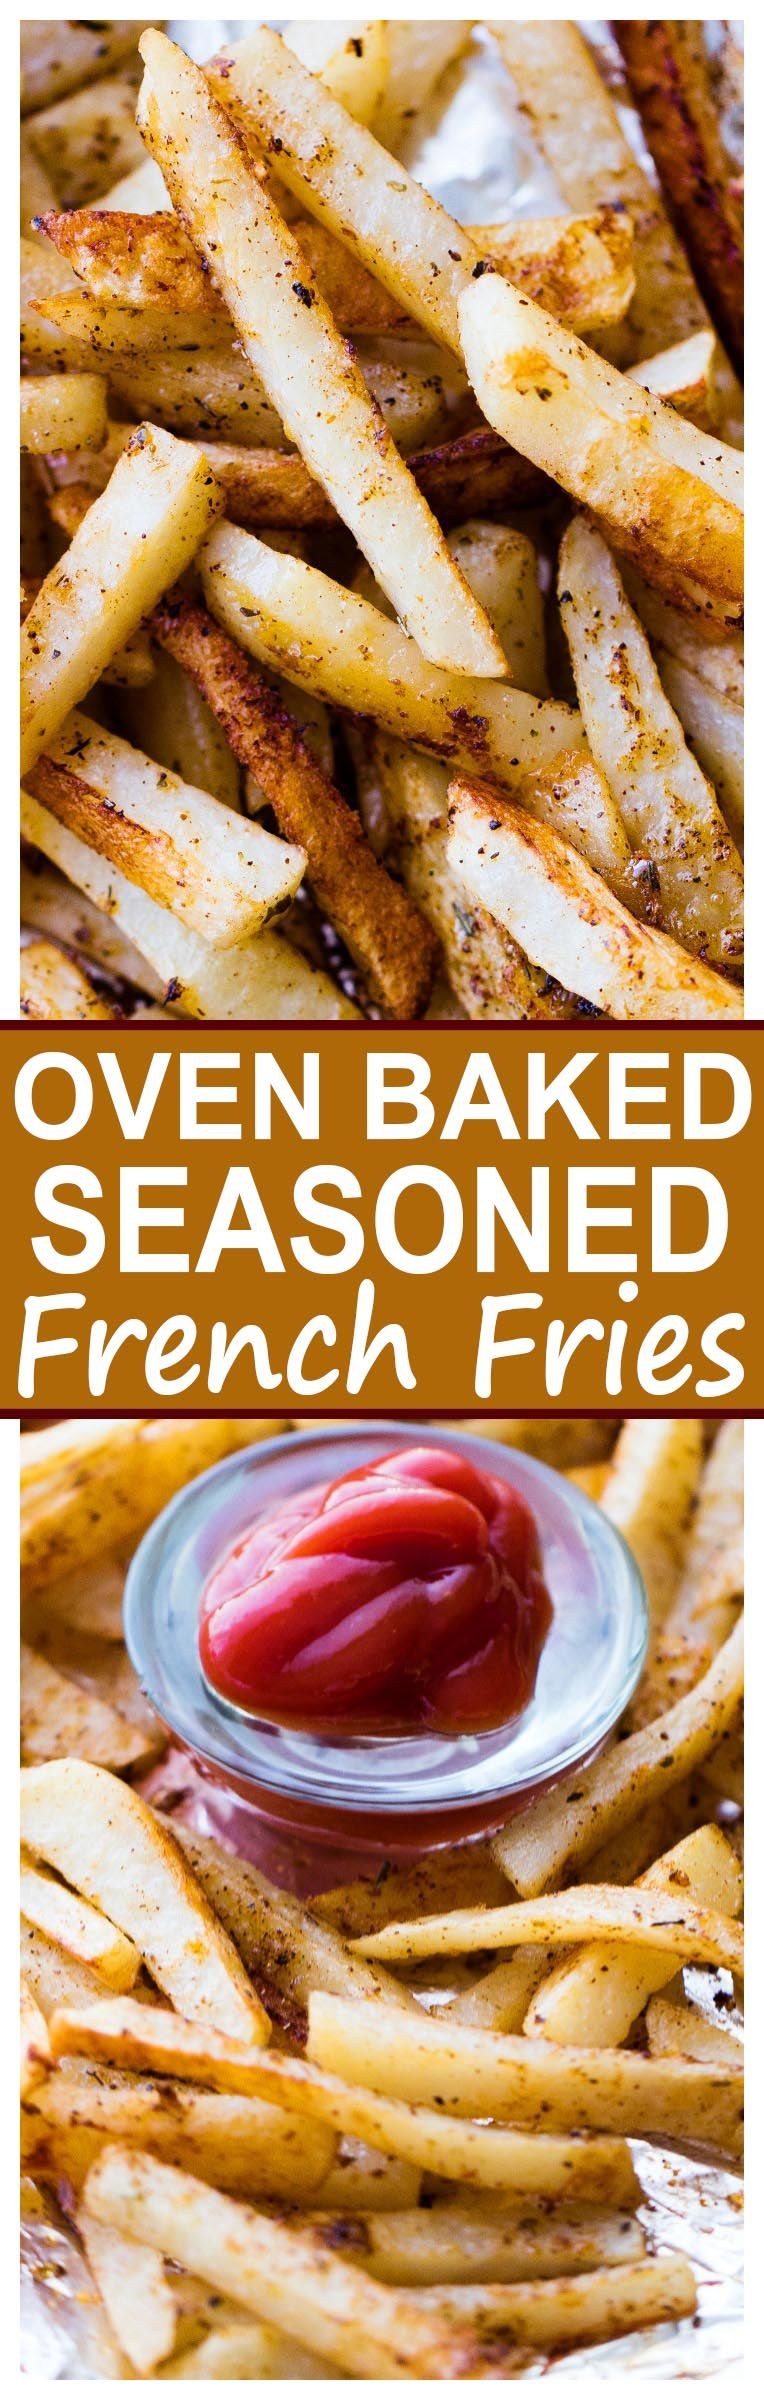 Oven Baked Seasoned French Fries - Deliciously seasoned, golden french fries prepared in the oven!